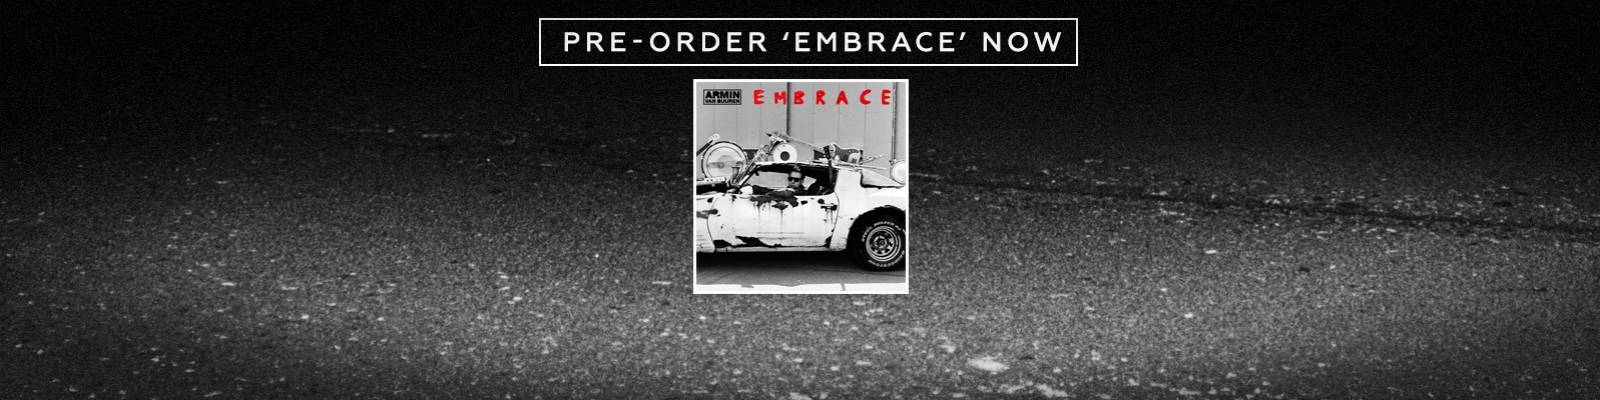 Armin van Buuren reveals full tracklist to 'Embrace' + digital pre-order!